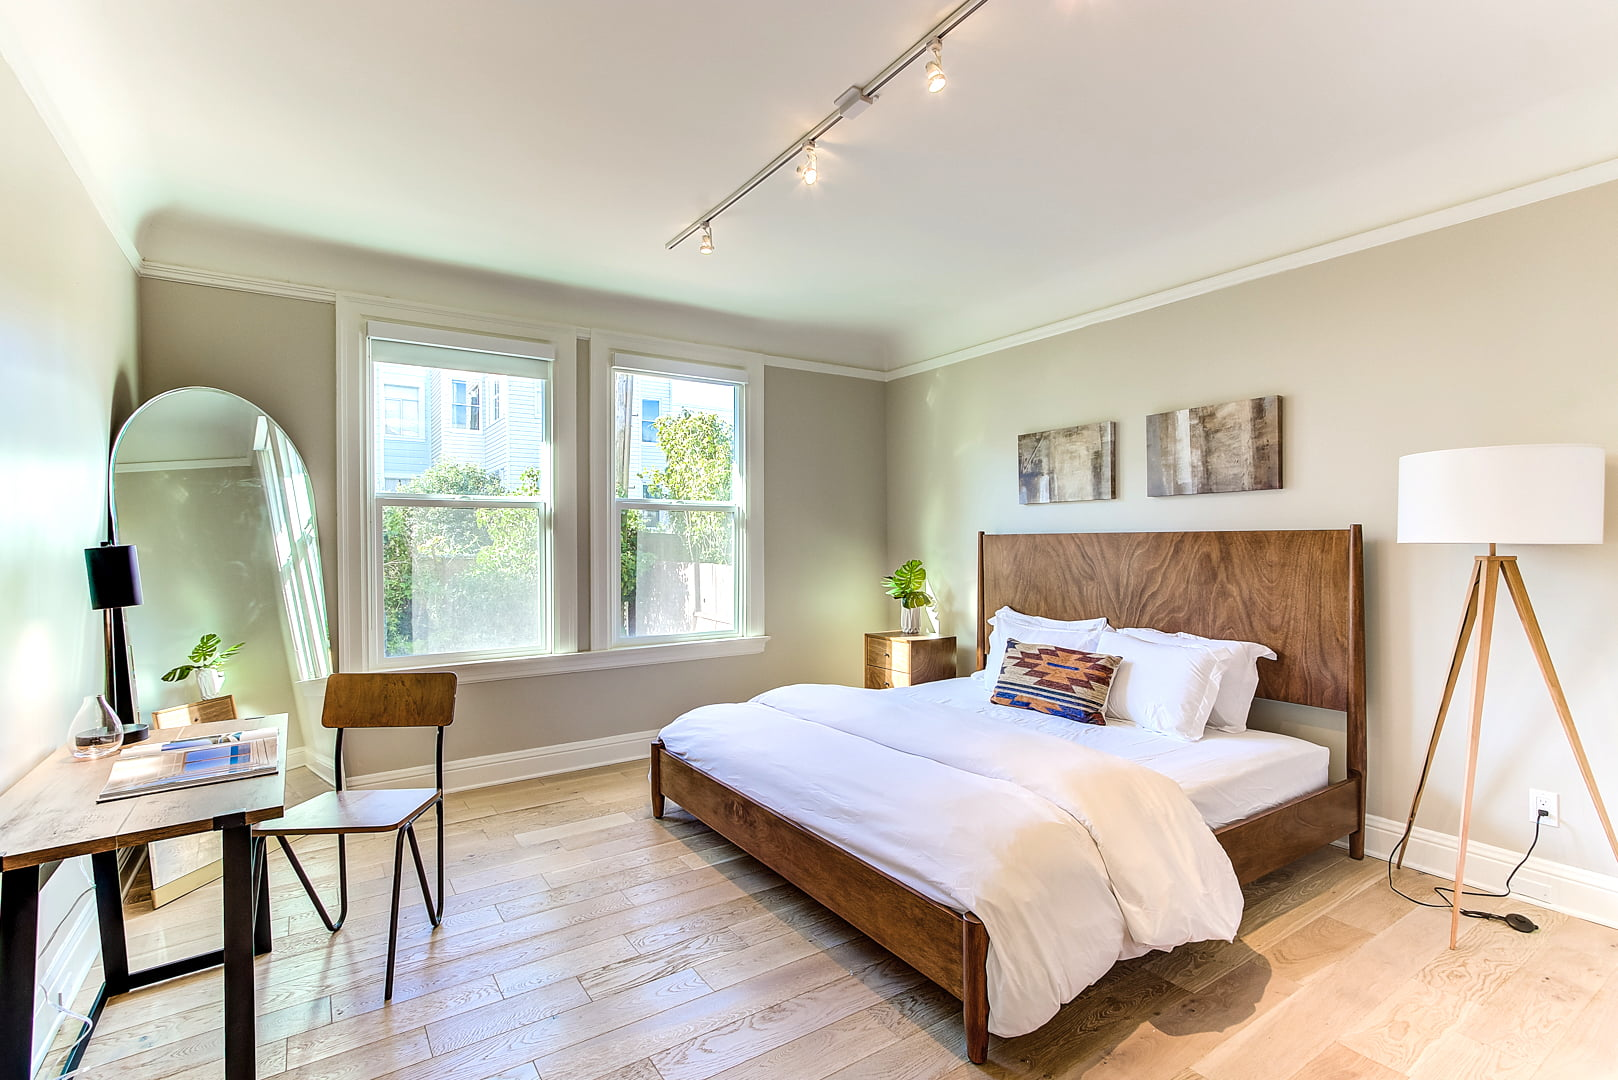 Anyplace and Rentals United Partner as the Only Worldwide Housing Marketplace Optimized for Mid- and Long-Term Stays